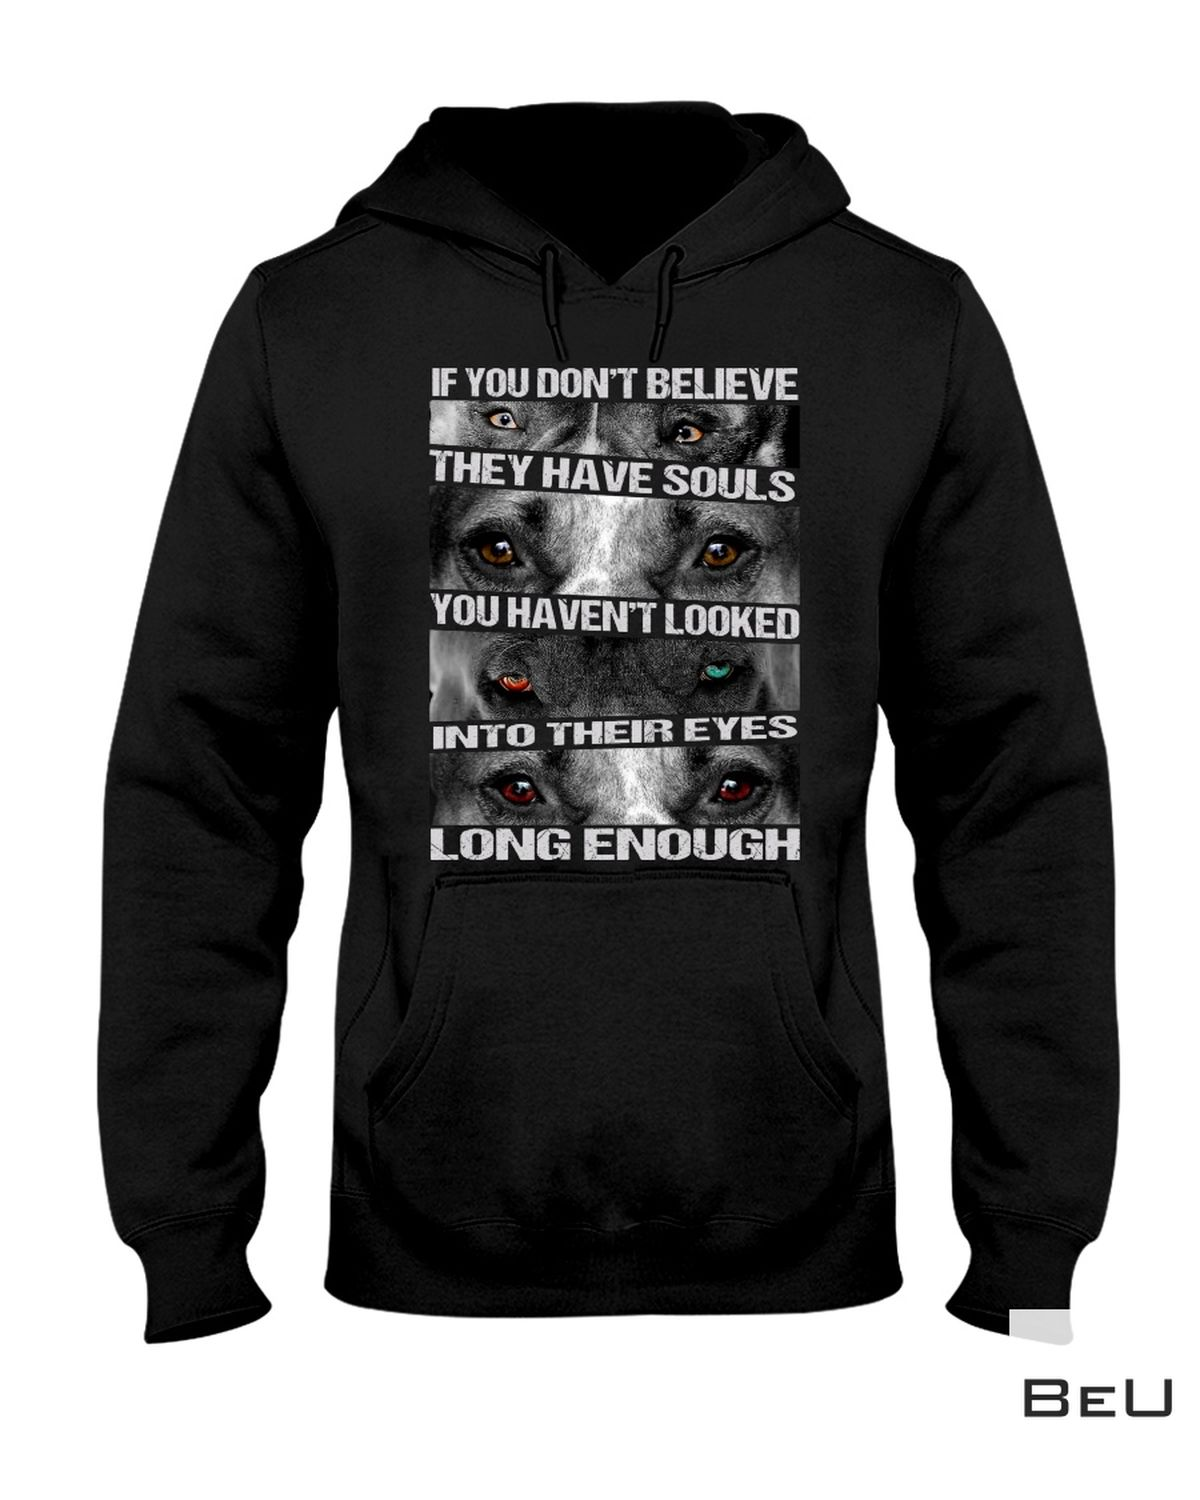 If You Don't Believe They Have Souls You Haven't Looked Into Their Eyes Long Enough Pit Bull Shirt z